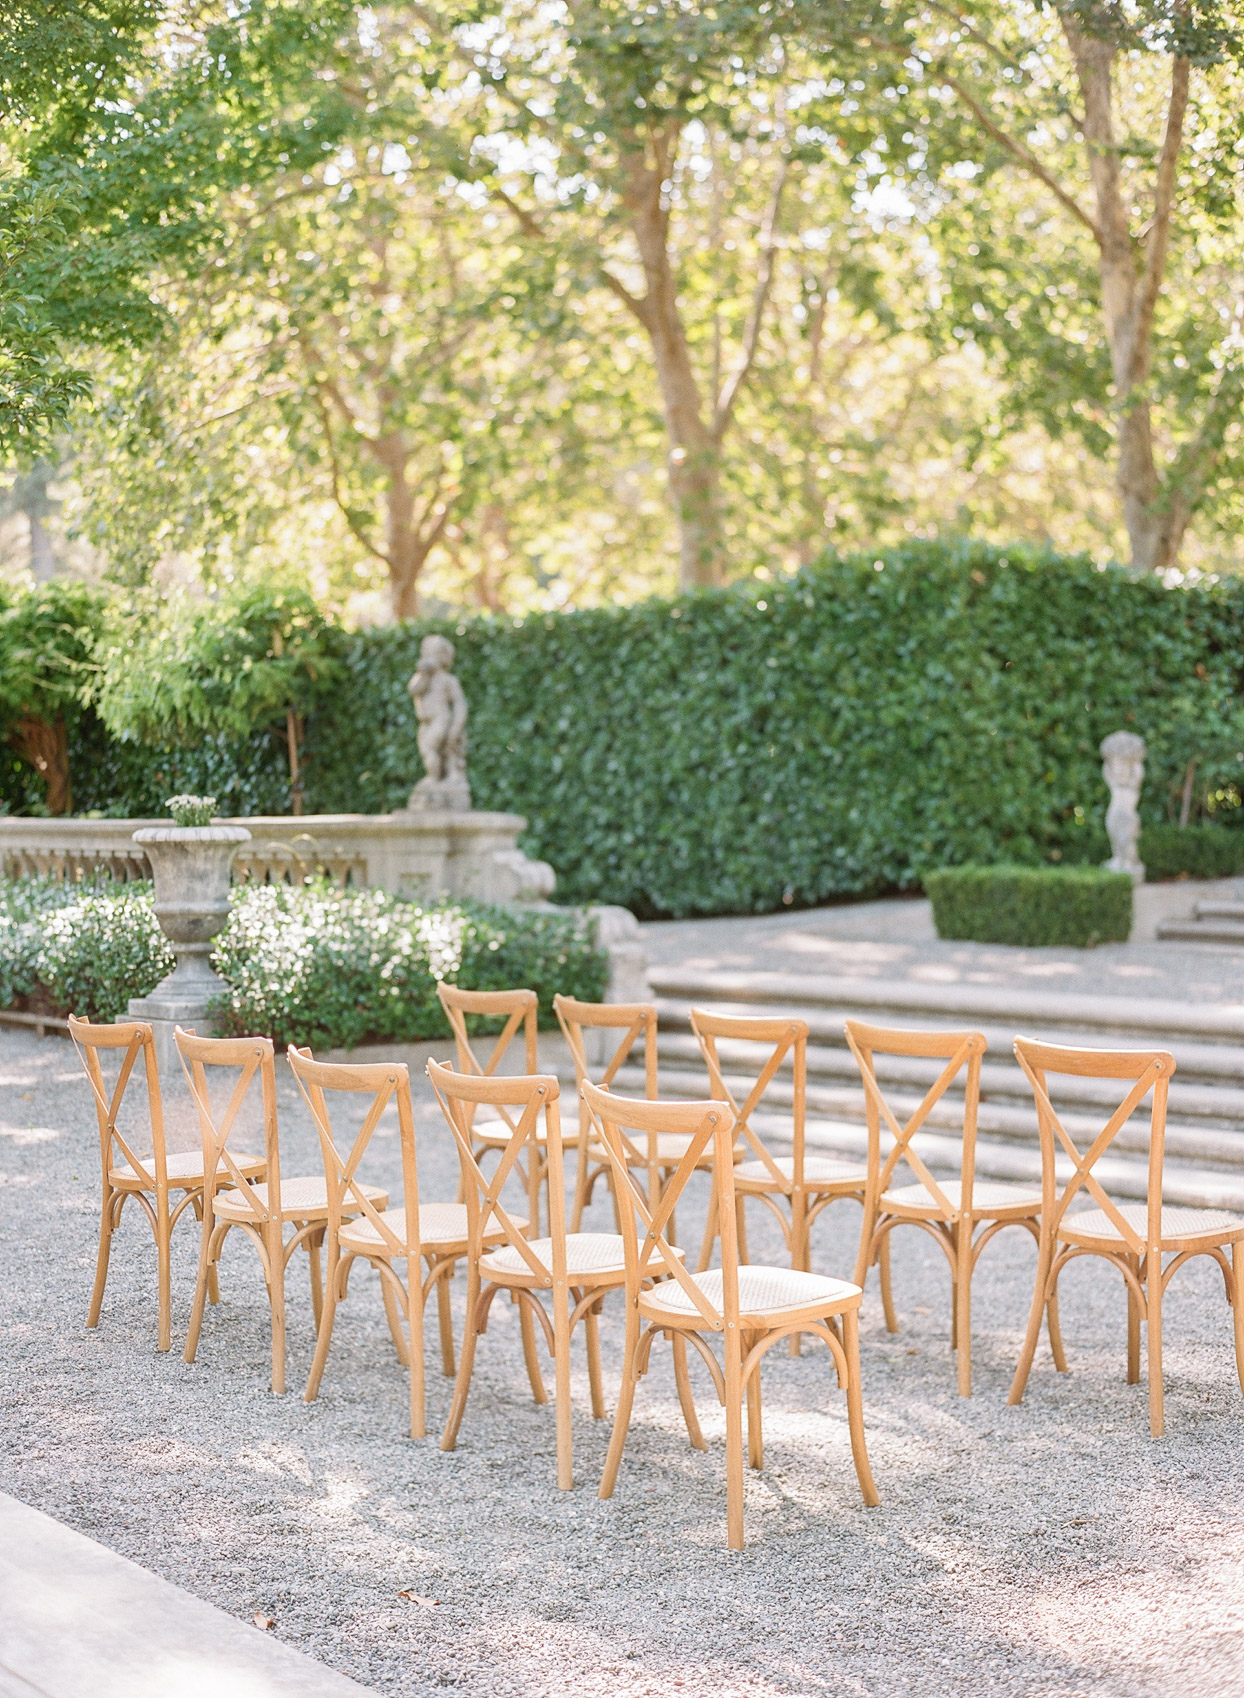 wooden ceremony chairs at outdoor wedding